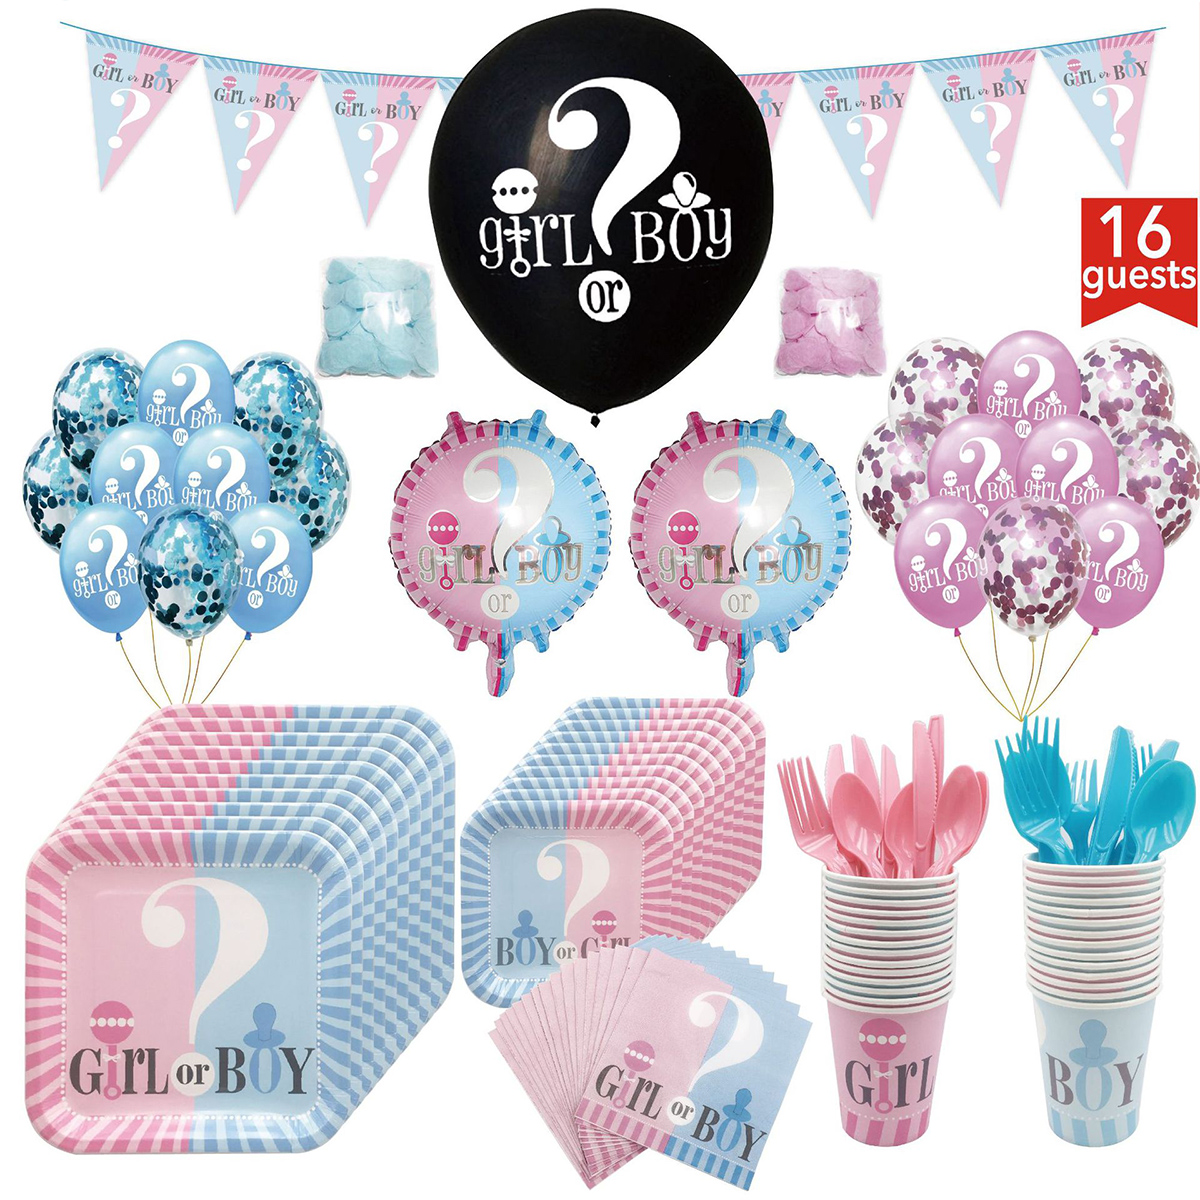 2019 Gender Reveal Balloon Party Supplies Gender Reveal Boy Or Girl Banner Confetti Foil Balloon Square Plate Tableware